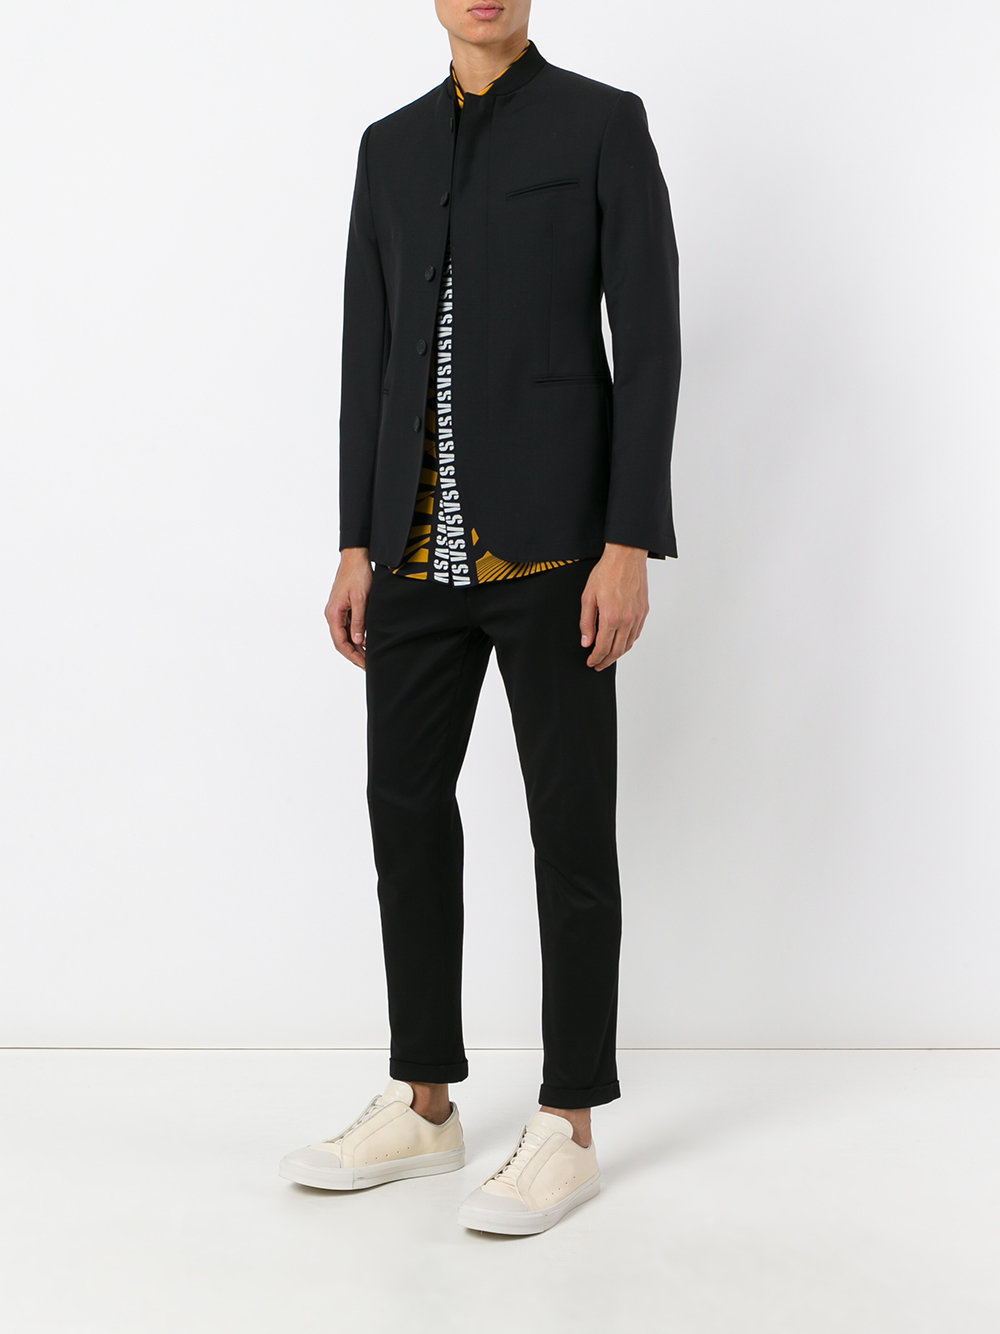 Kenzo fitted collarless blazer